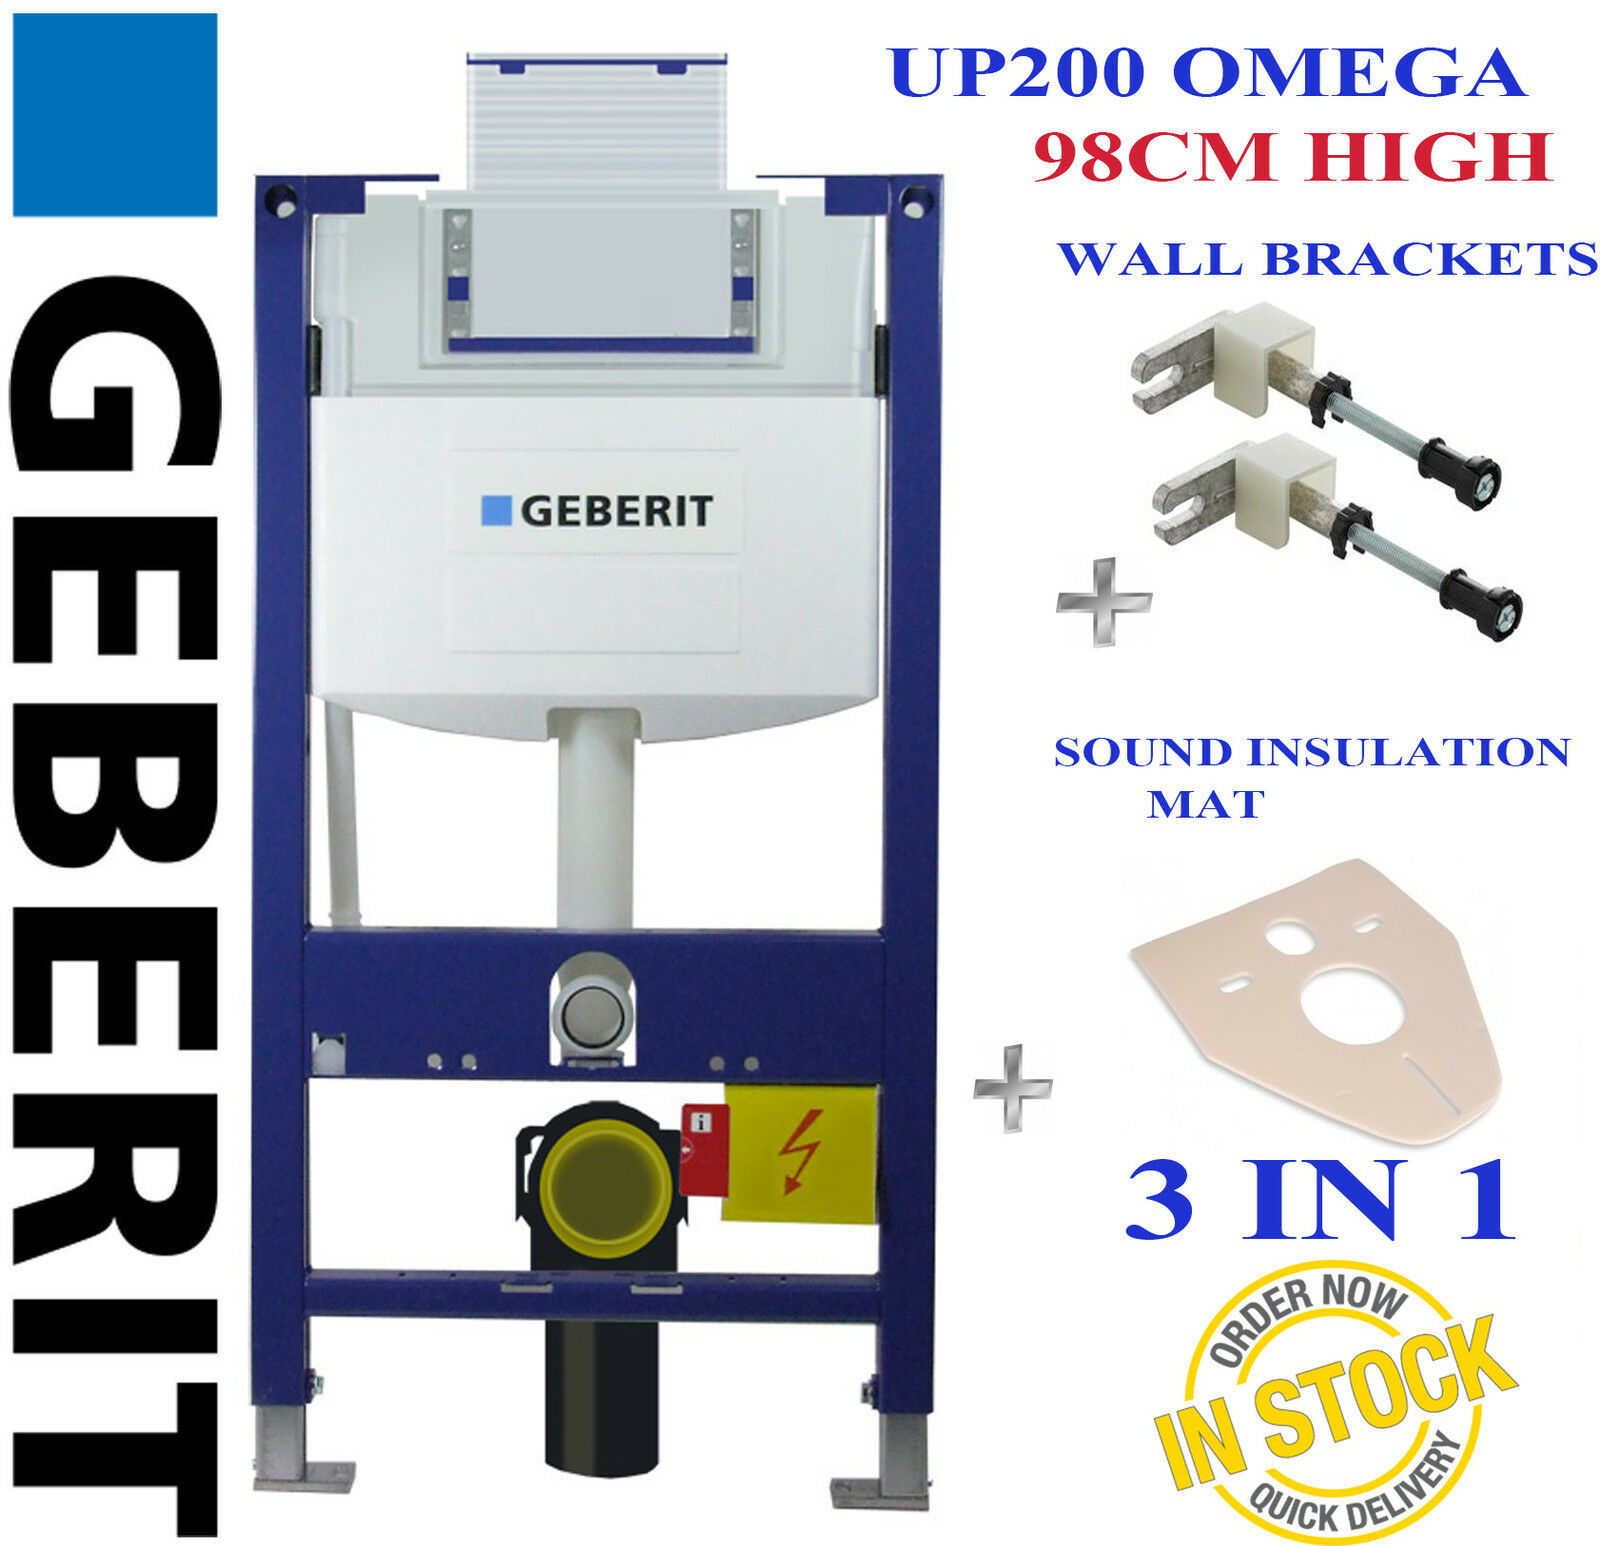 Geberit duofix frame for wall hung wc h82 with omega cistern 12cm - Geberit Duofix Omega Up200 98cm High Wc Toilet Frame Wall Brackets Mat H98cm